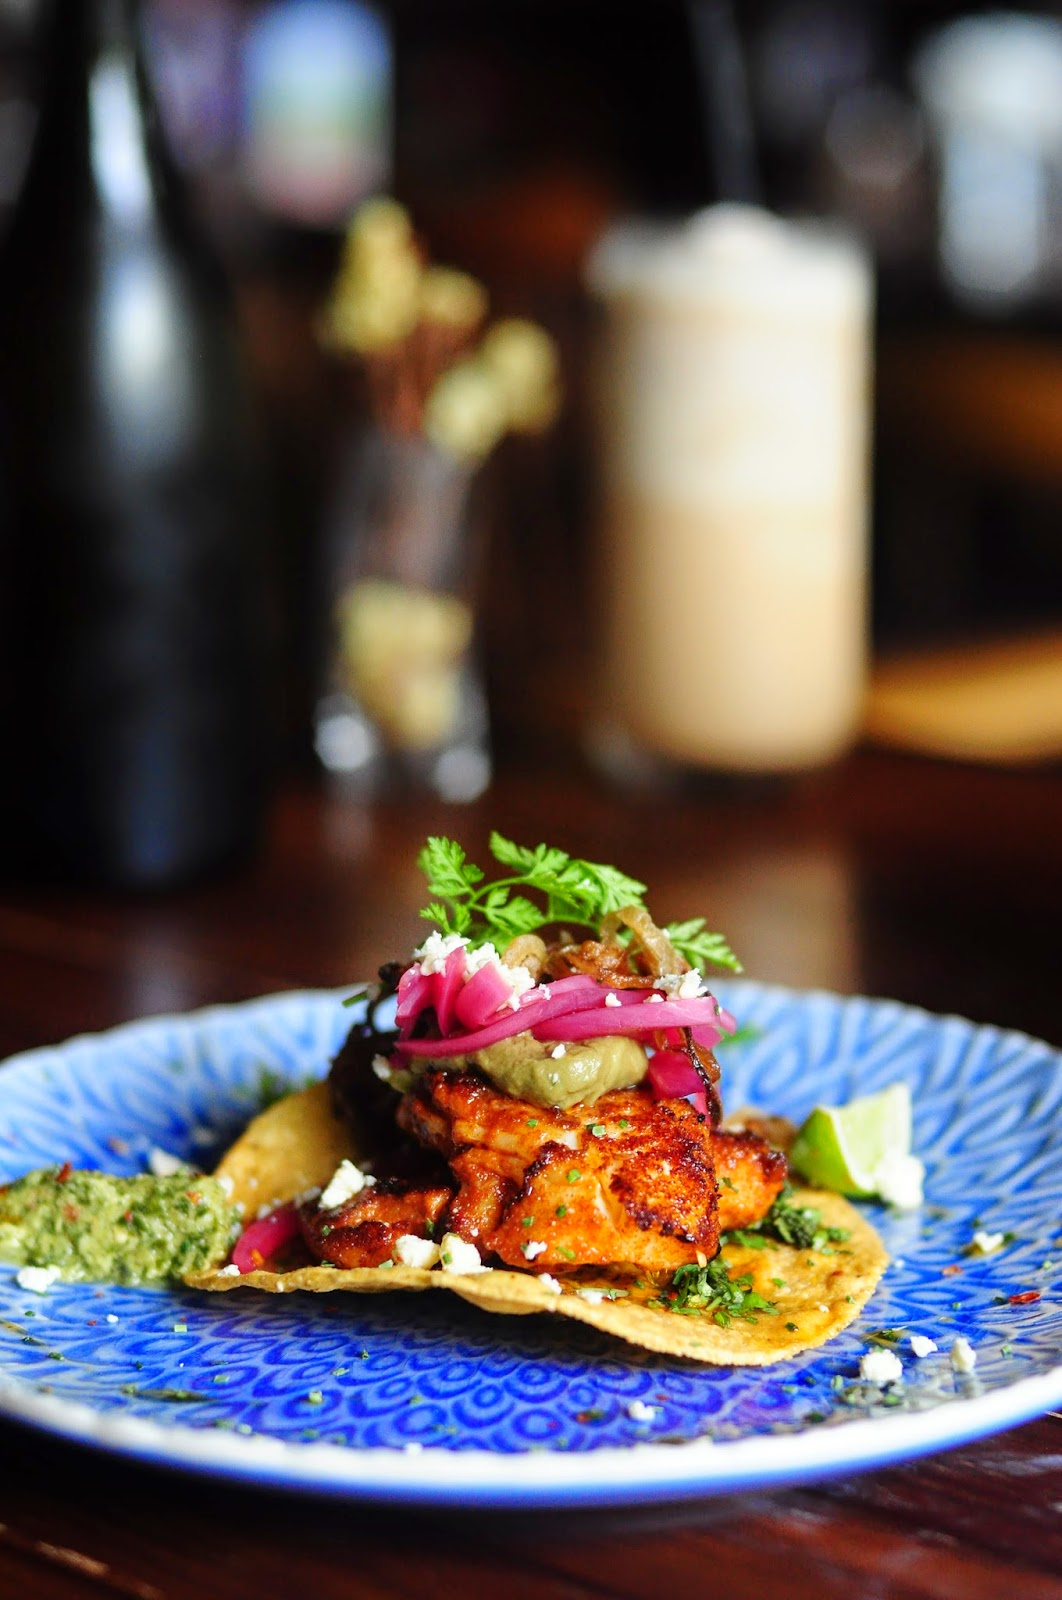 Seasons Bistro Singapore review: Cajun blackened fish taco